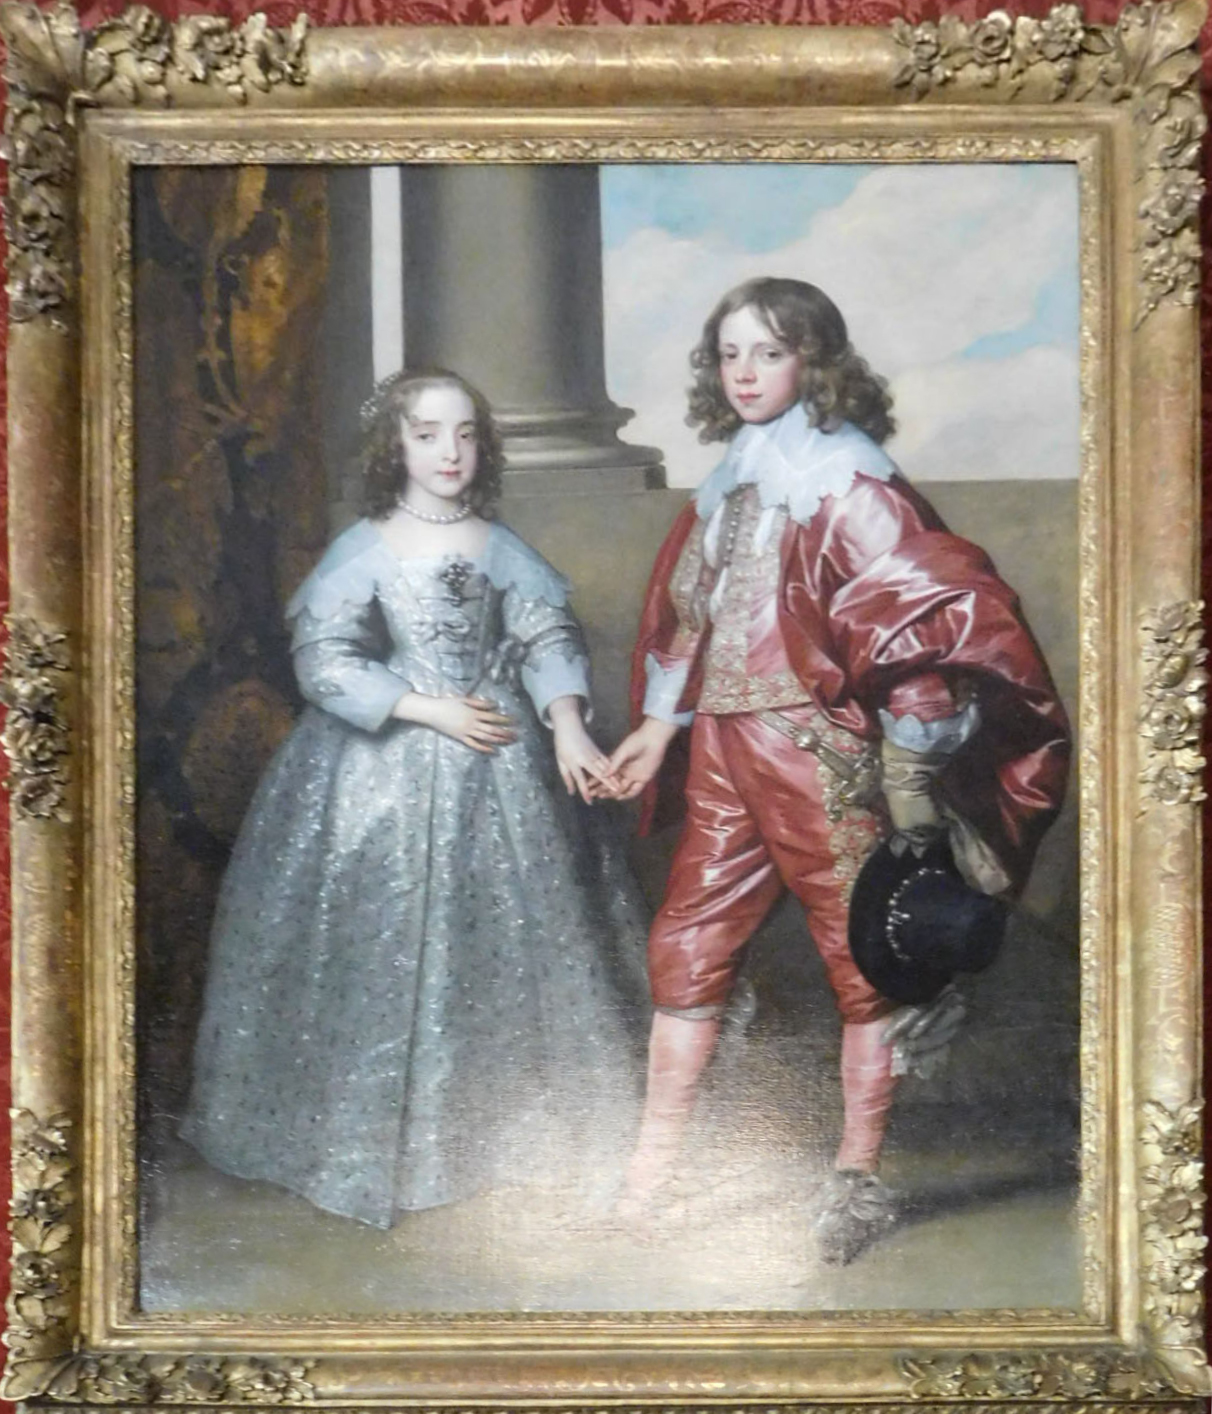 Mary, age 9, marries William II, age 14